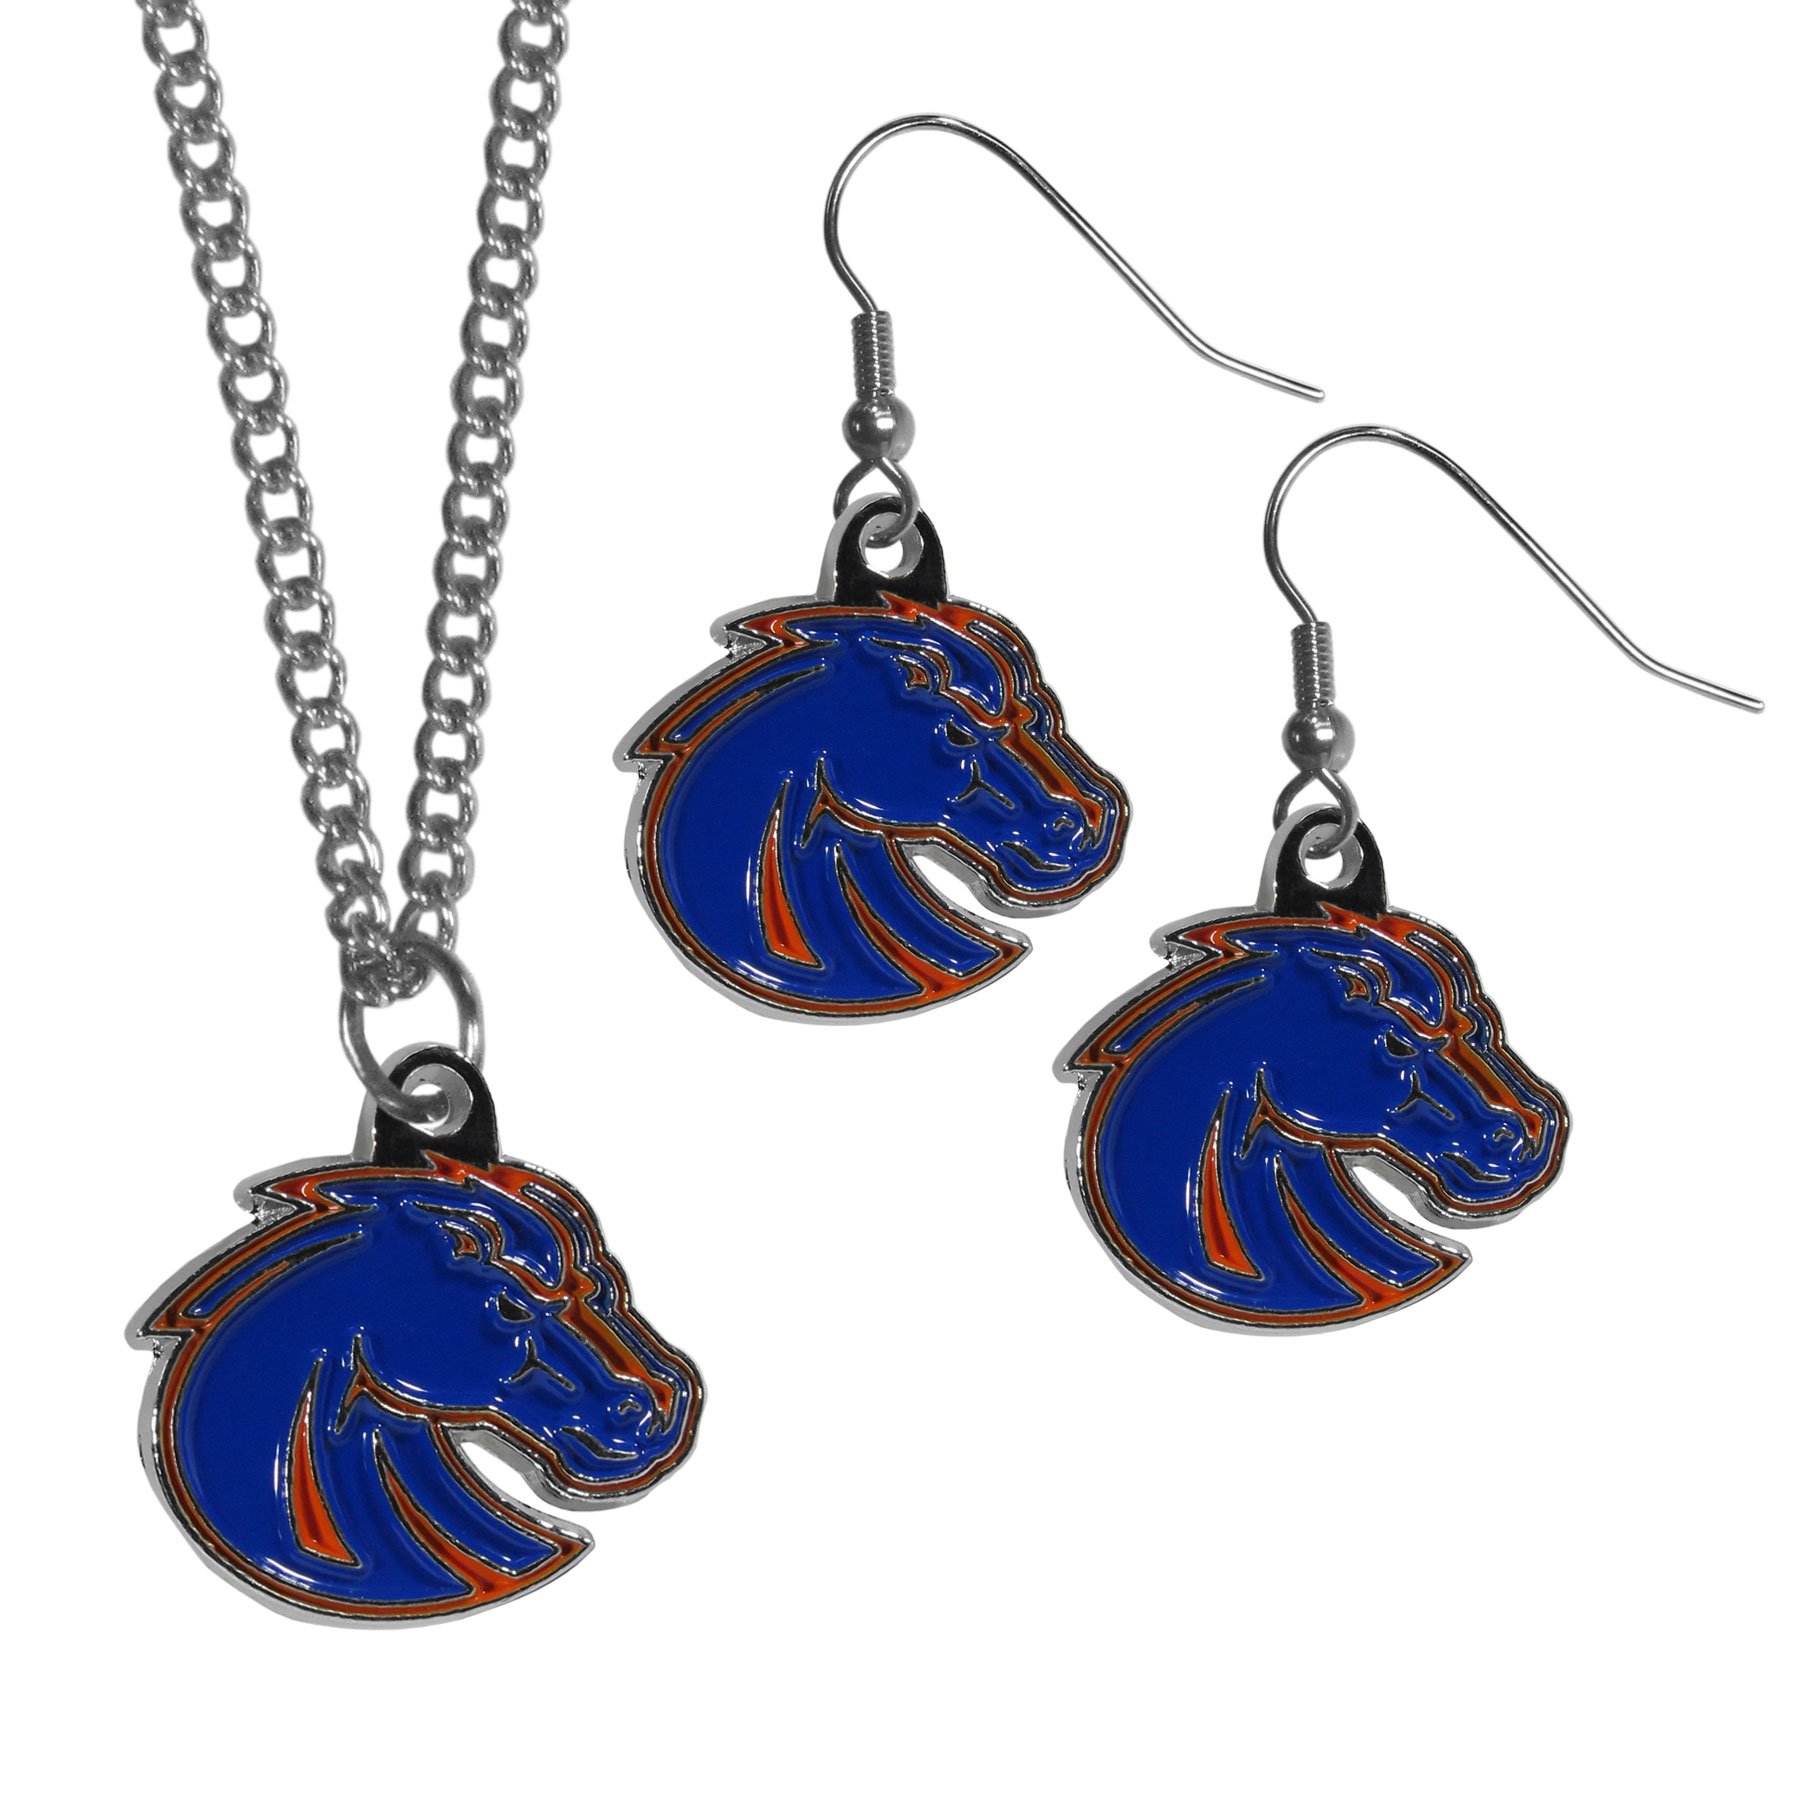 Boise St. Broncos Dangle Earrings and Chain Necklace Set - This classic jewelry set contains are most popular Boise St. Broncos dangle earrings and 22 inch chain necklace. The trendy, dangle earrings are lightweight and feature a fully cast metal team charm with enameled team colors. The matching necklace completes this fashion forward combo and is a spirited set that is perfect for game day but nice enough for everyday.